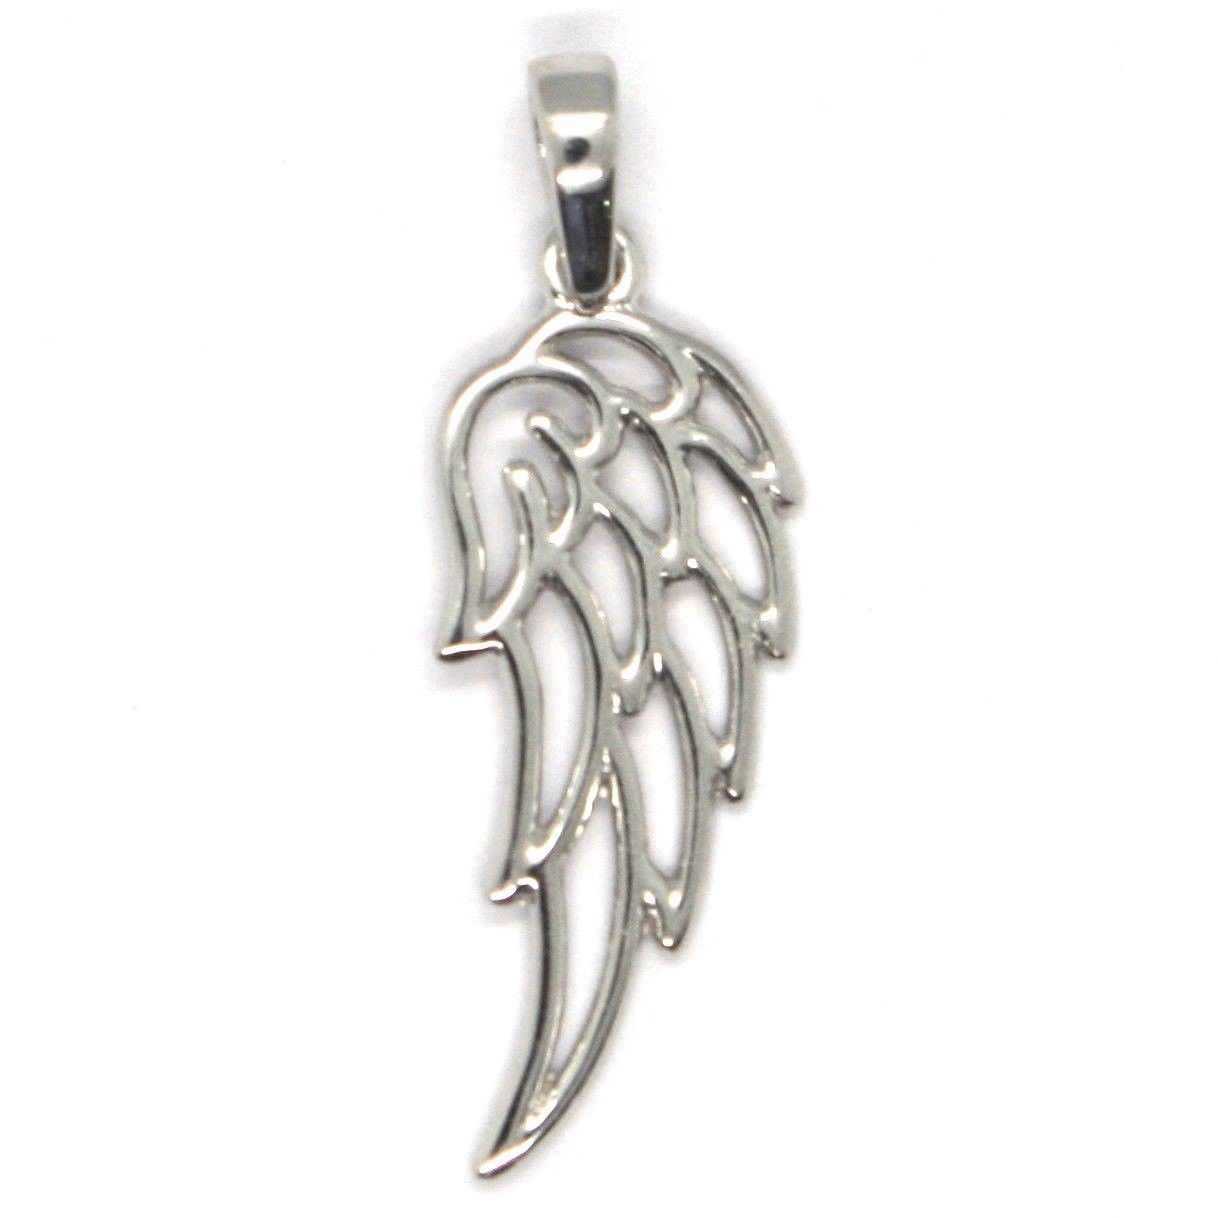 SOLID 18K WHITE GOLD PENDANT MEDAL, STYLIZED ANGEL WING, WINGS, MADE IN ITALY